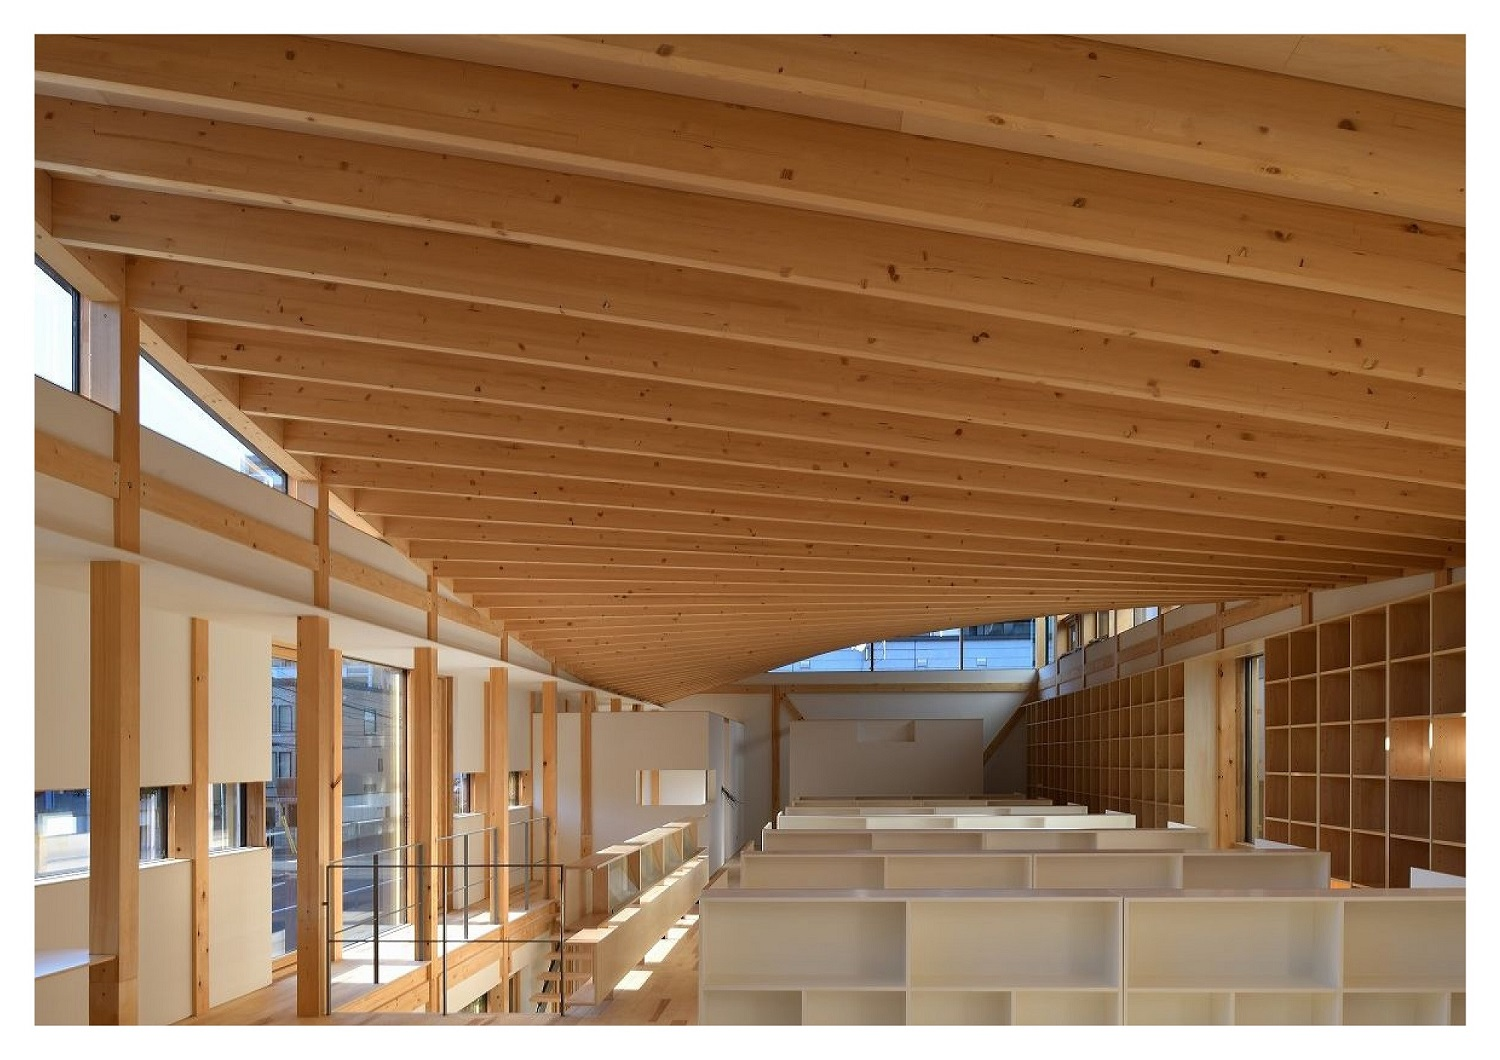 Ezo pine, one of the representative trees of Hokkaido, was used. The wooden HP shell roof, which captures and reflects the natural scenery of light from morning to afternoon onto the space surrounded by th Ken Goshima